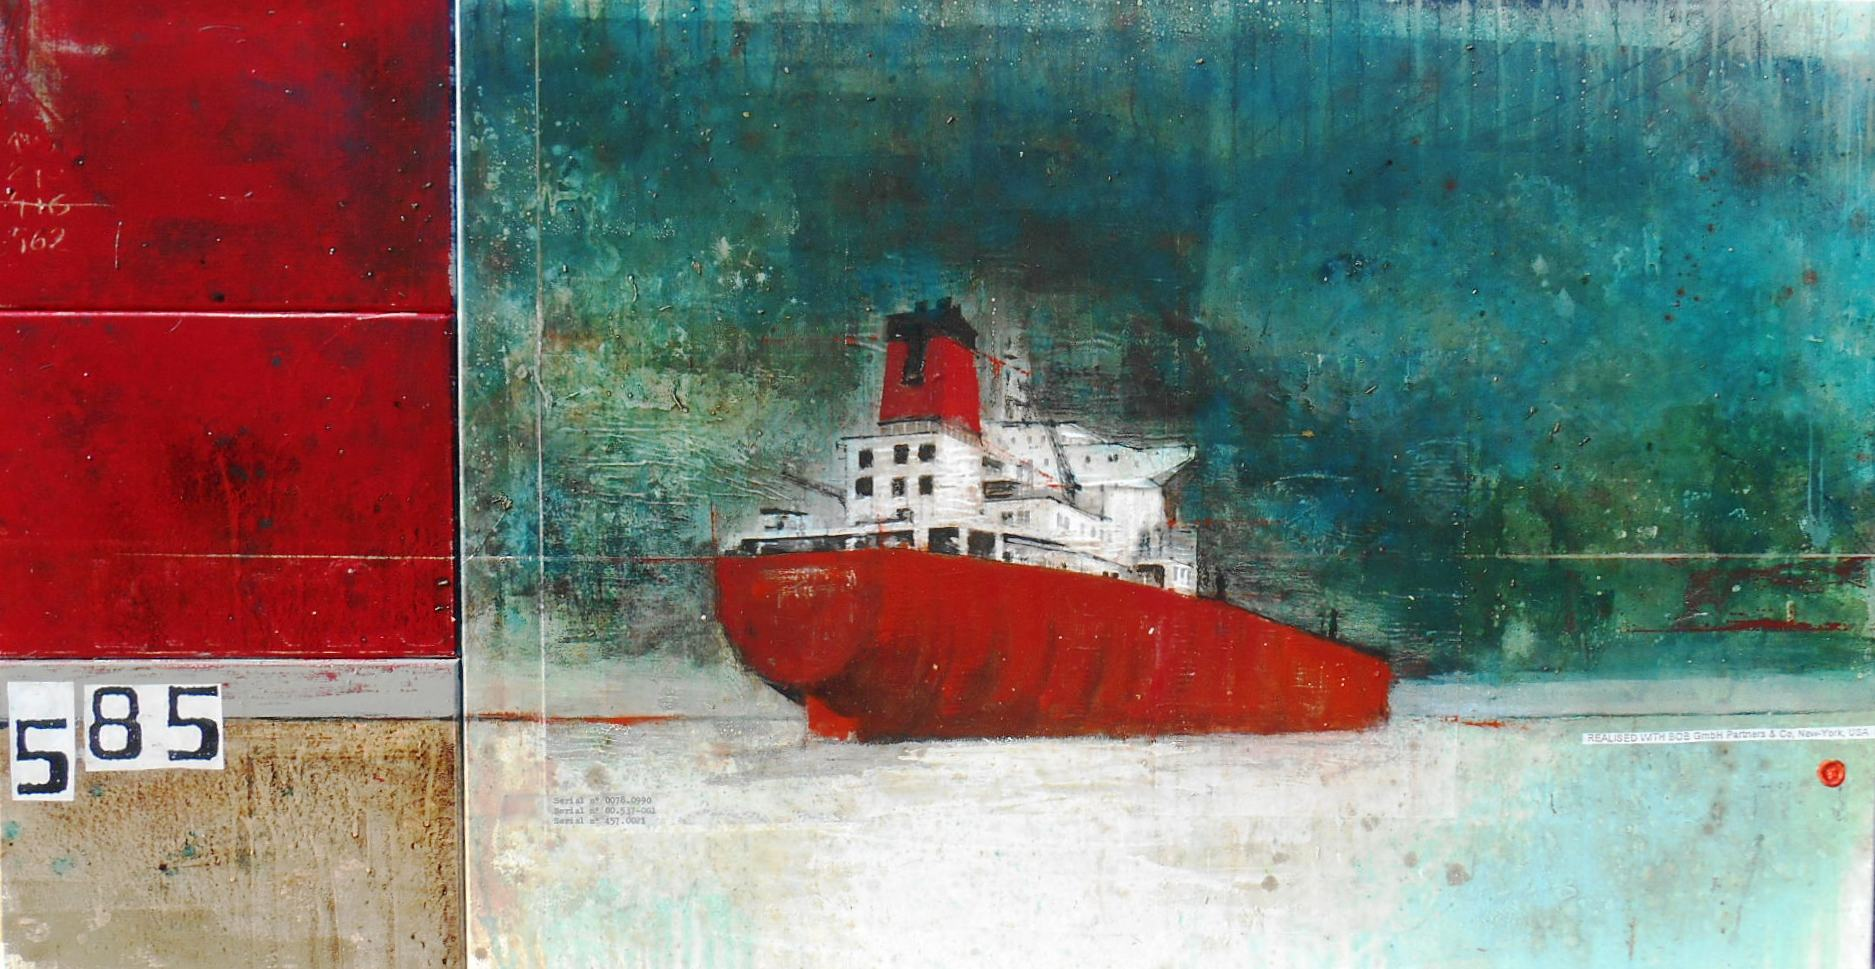 After Oil - Tankers Armada - collage photo, huile, acrylique sur toile - 90 x 170 cm - 2014